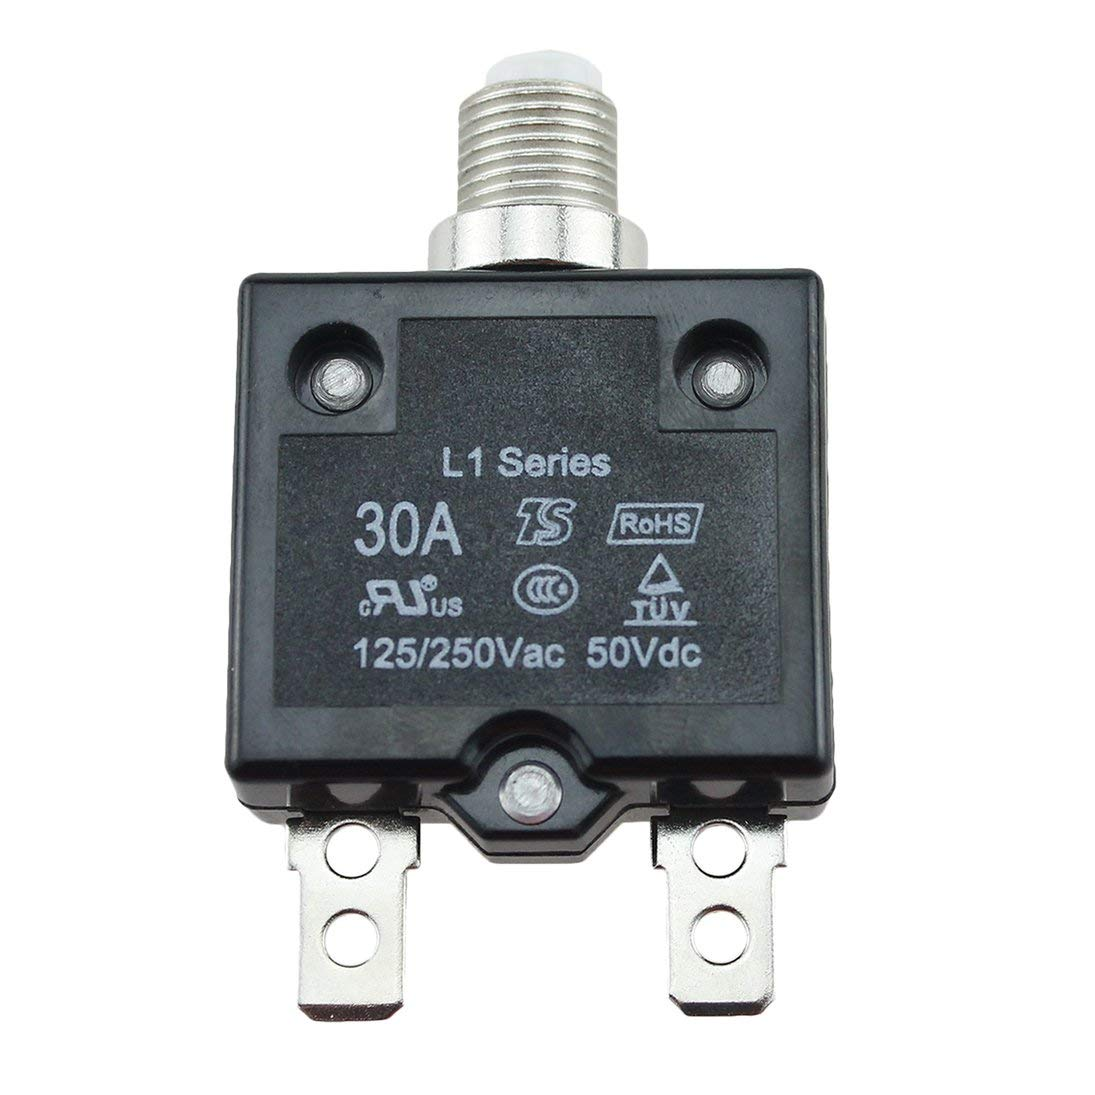 Baynne 5A/10A/15A/20A/30A Circuit Breaker Waterproof Push Button Resettable Thermal Fuse Circuit Breaker Panel Mount